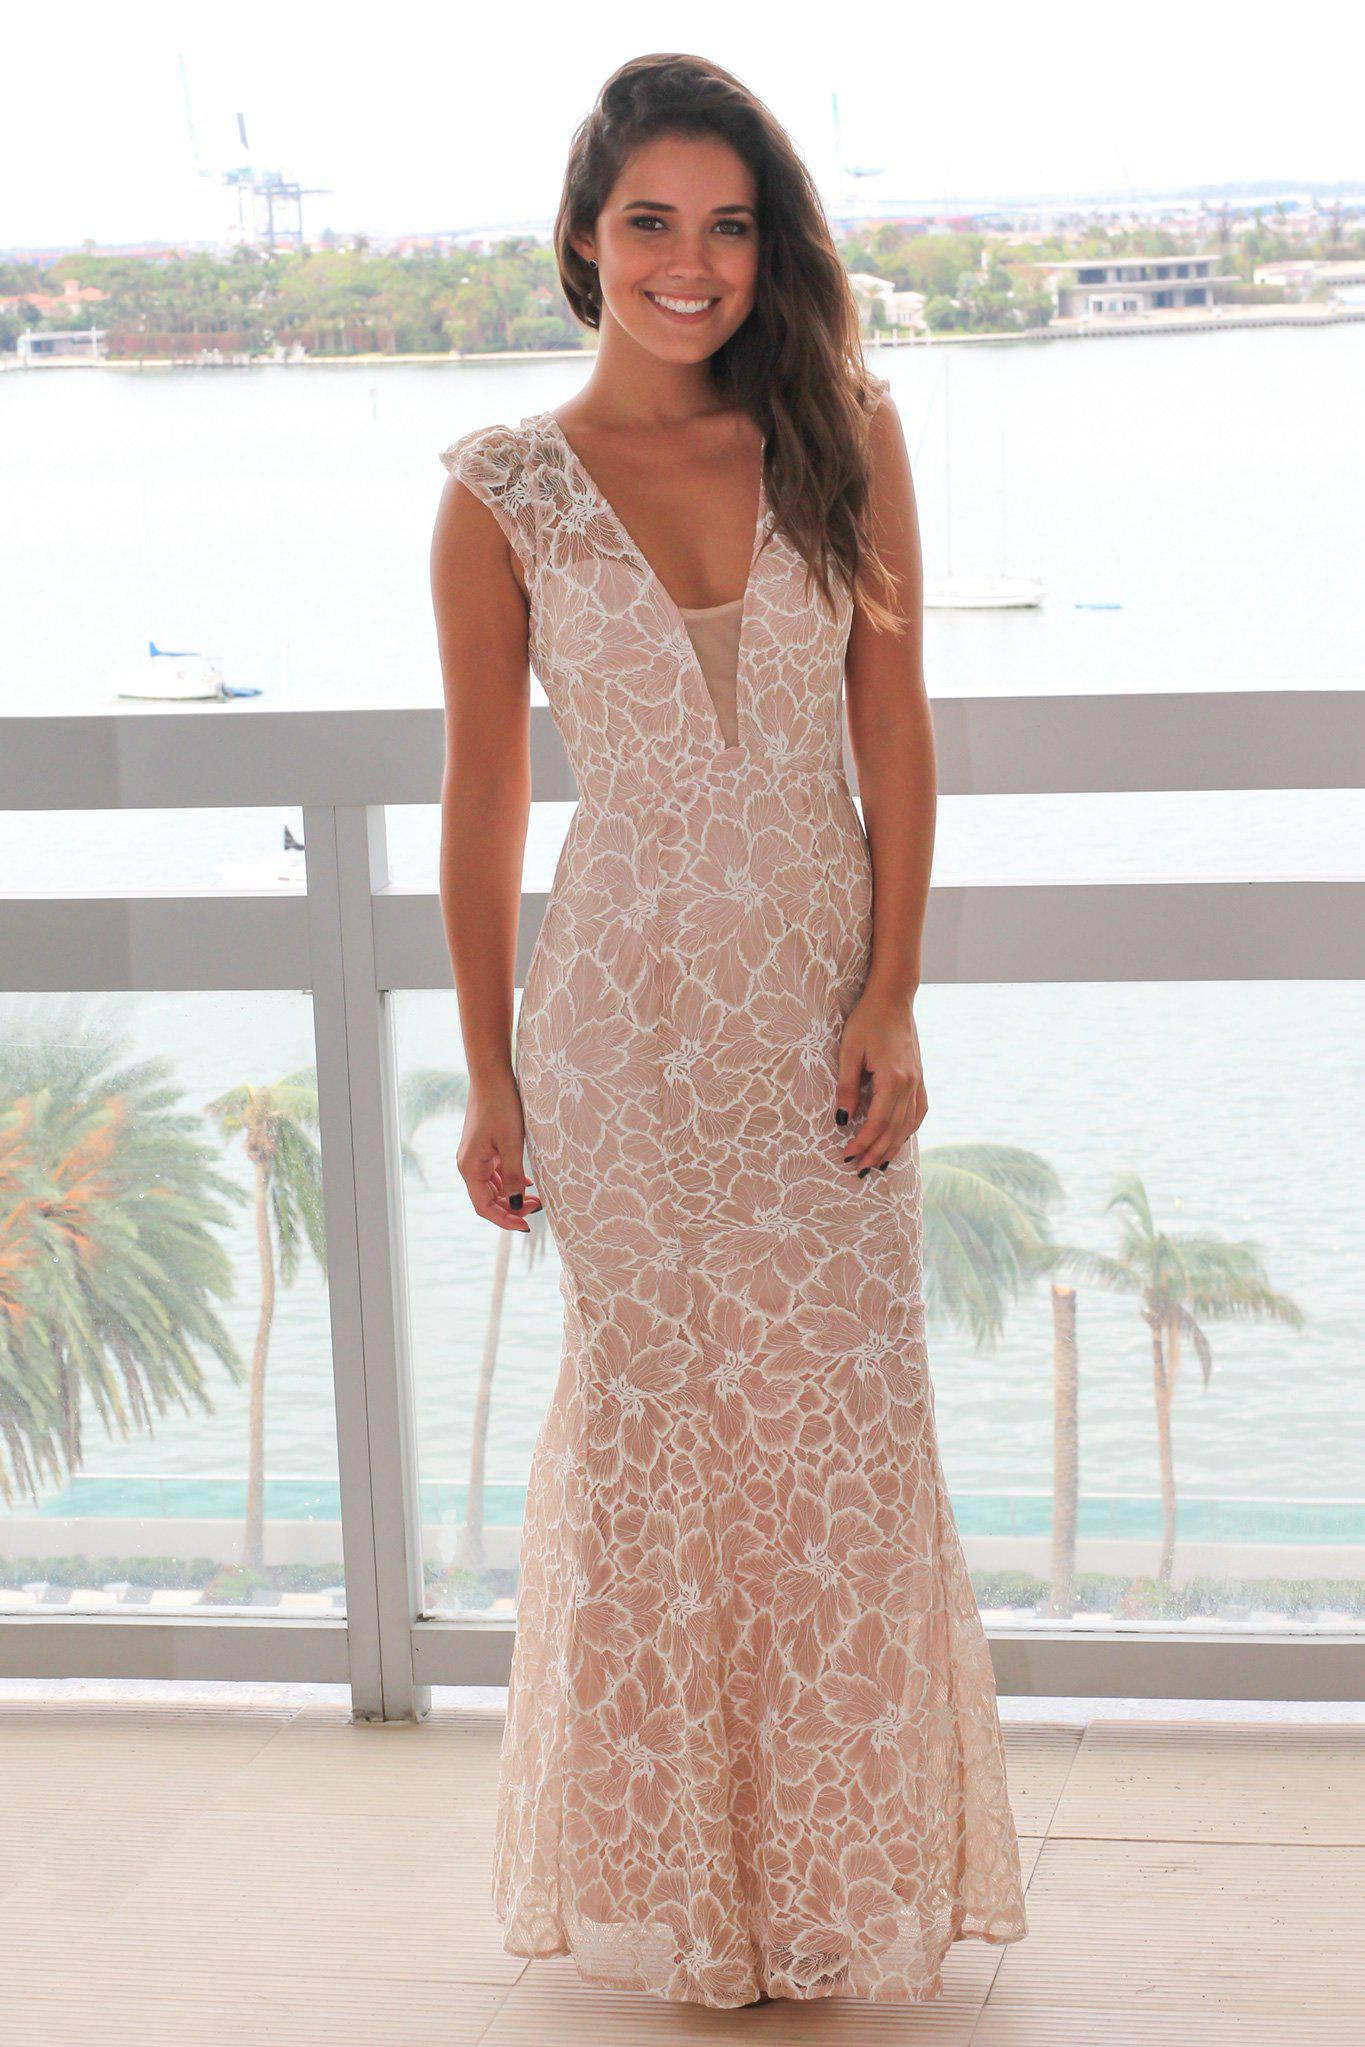 Blush and Ivory Lace Maxi Dress with Mesh V-Neck | Formal Dresses ...